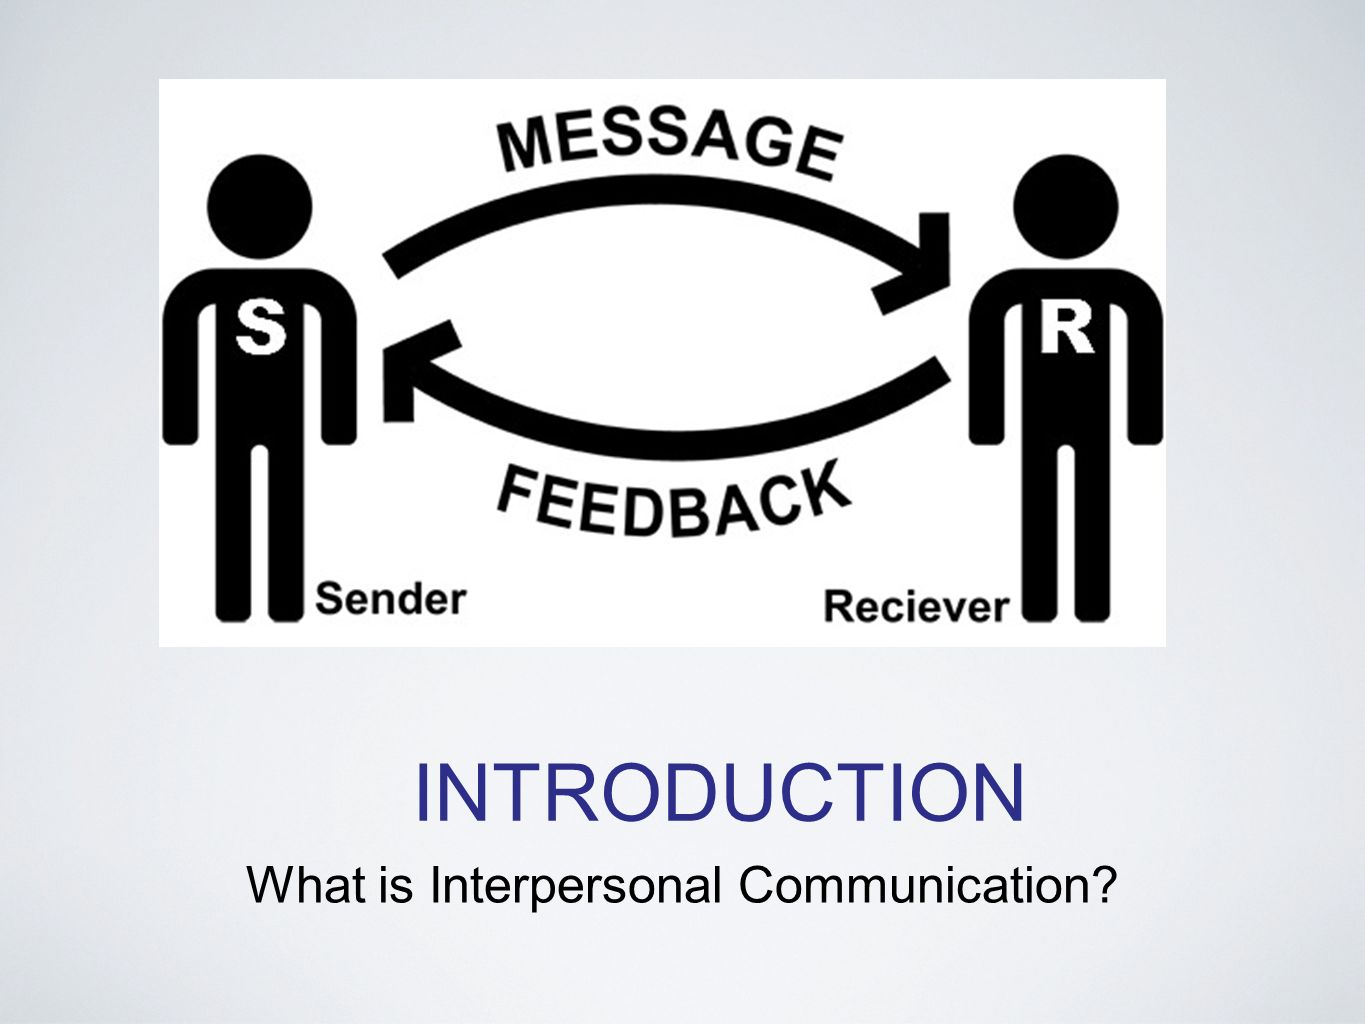 INTRODUCTION What is Interpersonal Communication